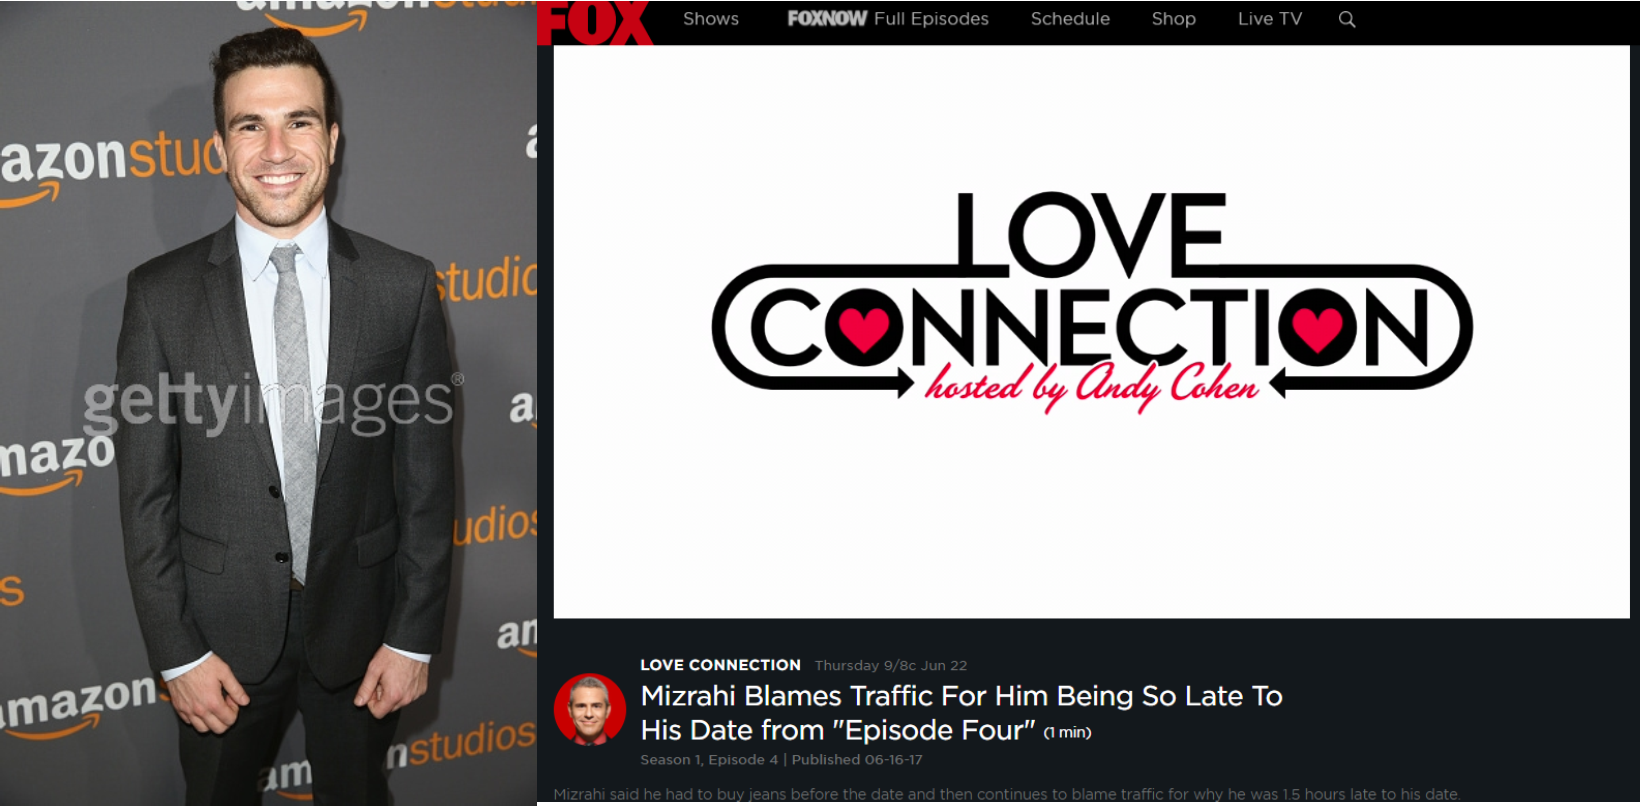 Watch the sneak peek at Andy Mizrahi on Love Connection with Andy Cohen...